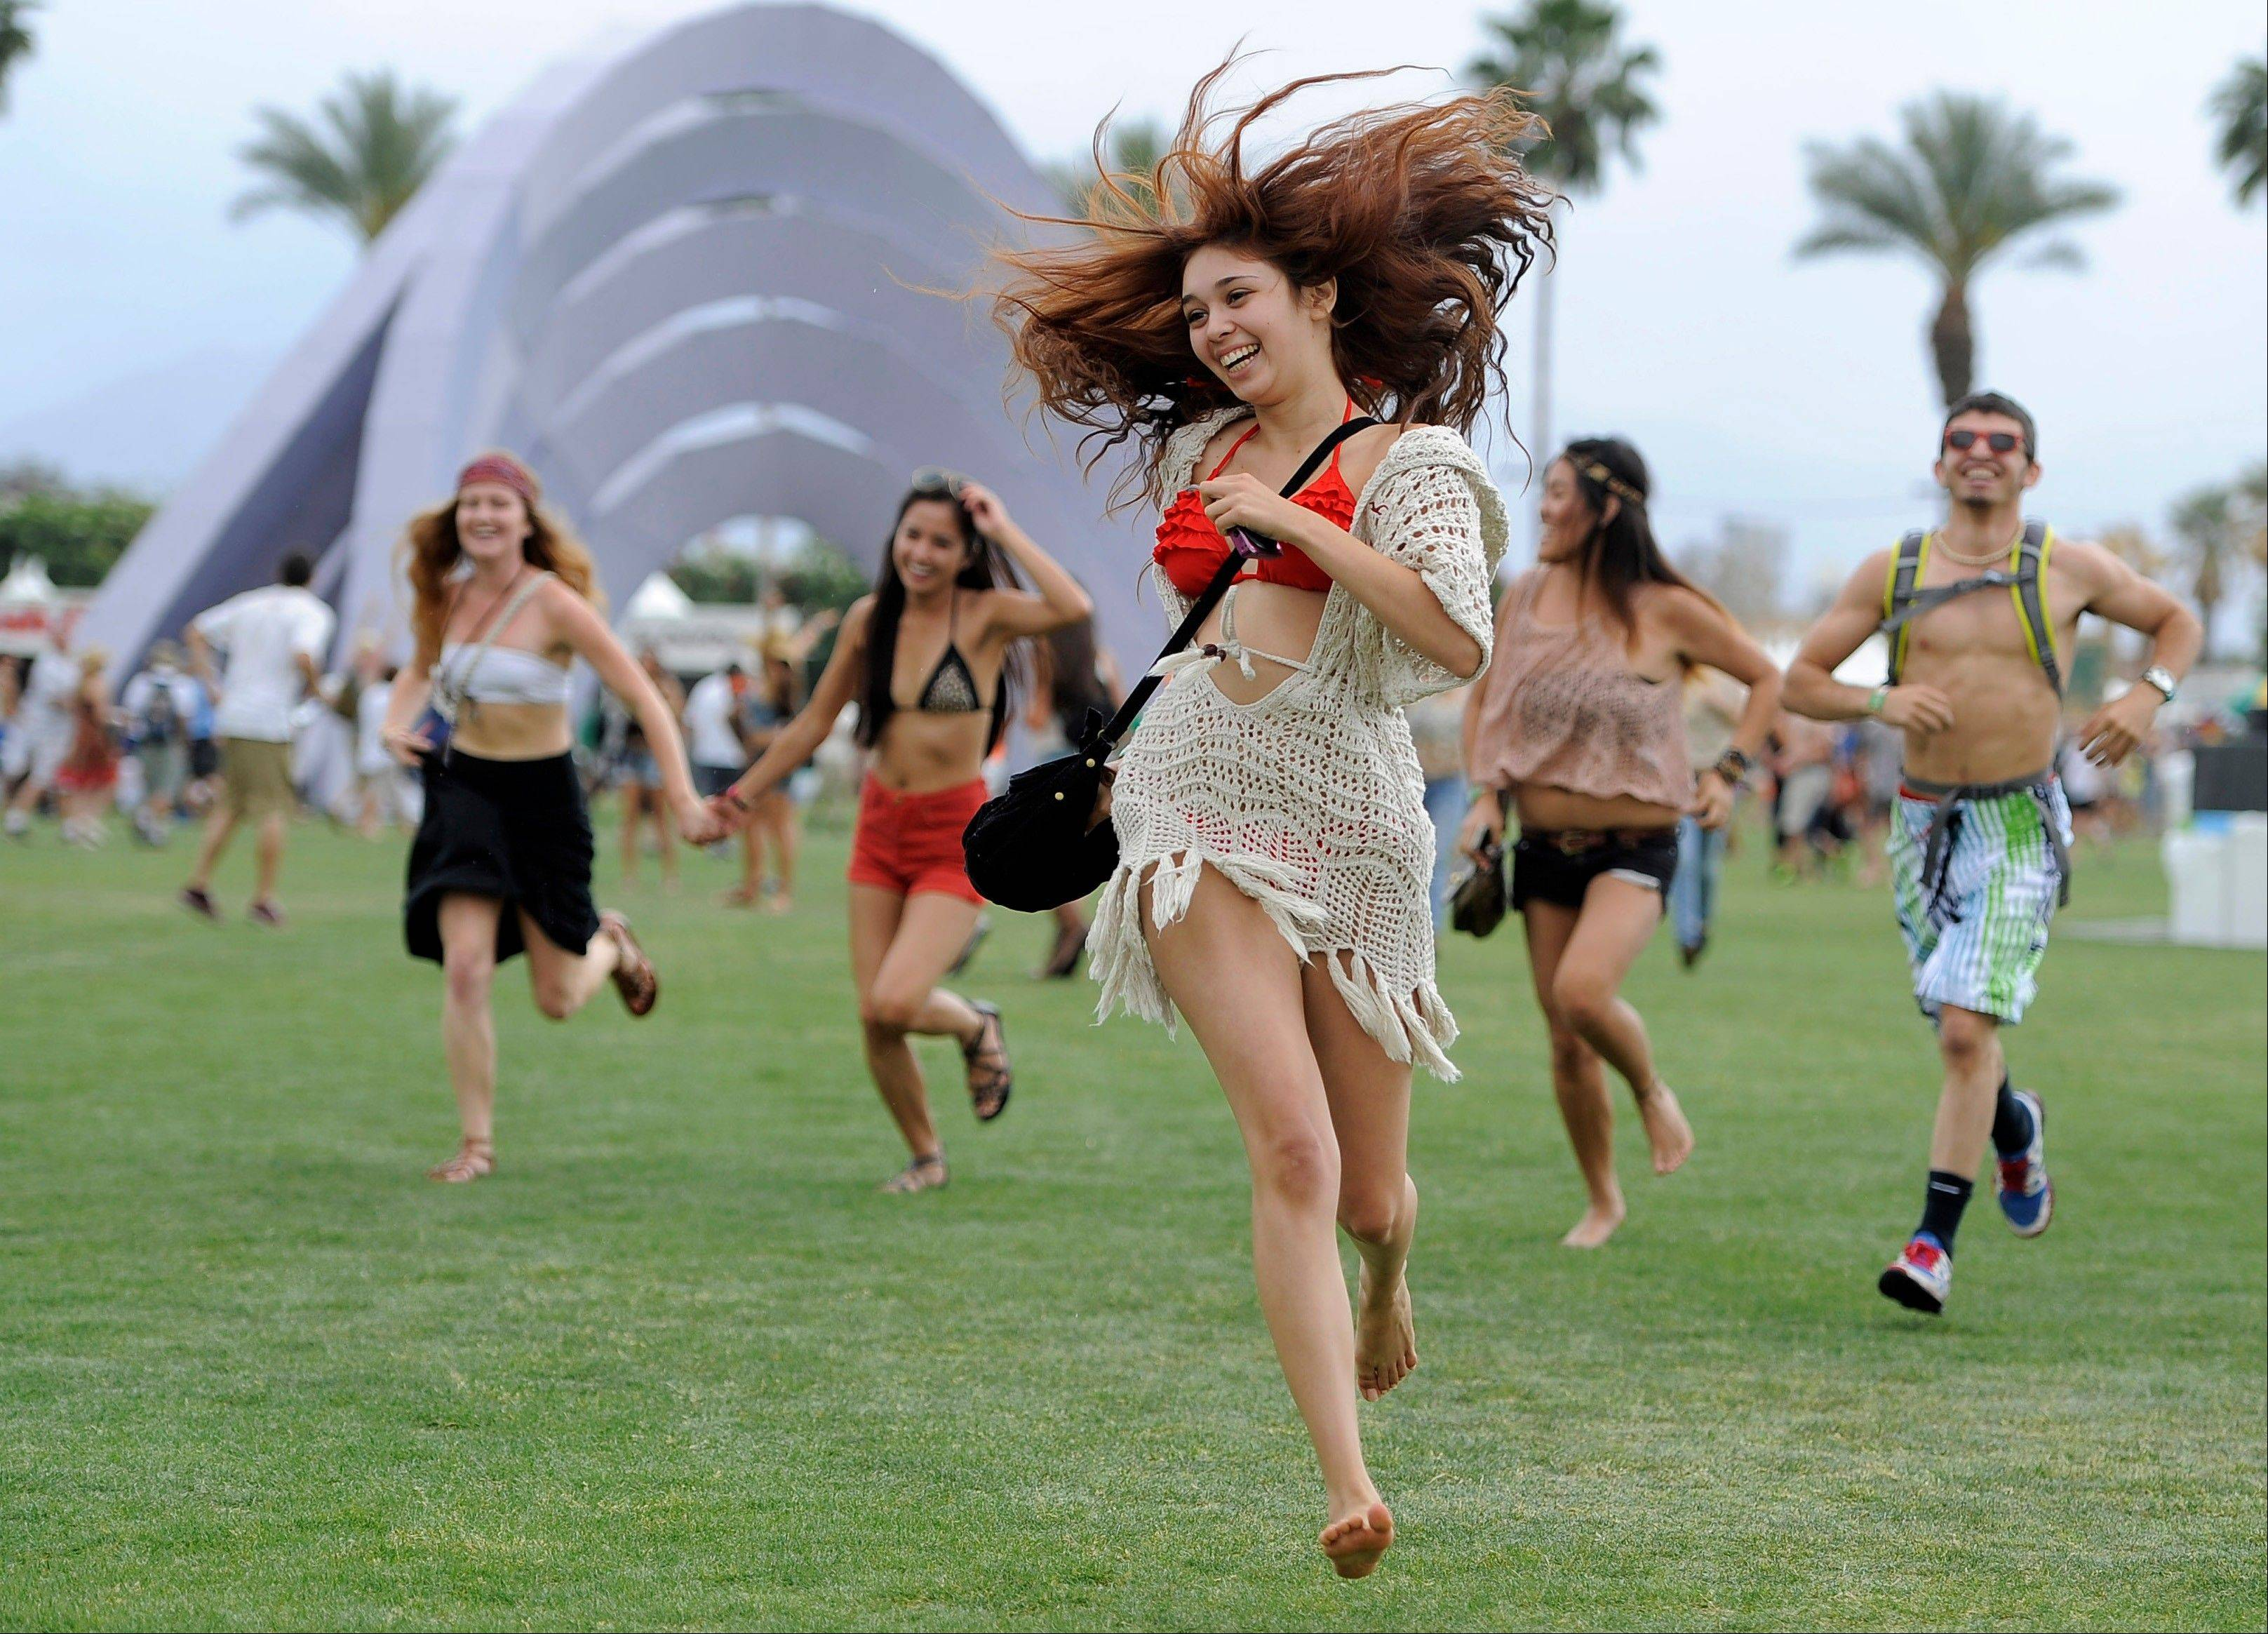 Festival goers run toward the main stage to catch the beginning of Kendrick Lamar�s set during the first weekend of the 2012 Coachella Valley Music and Arts Festival in Indio, Calif.